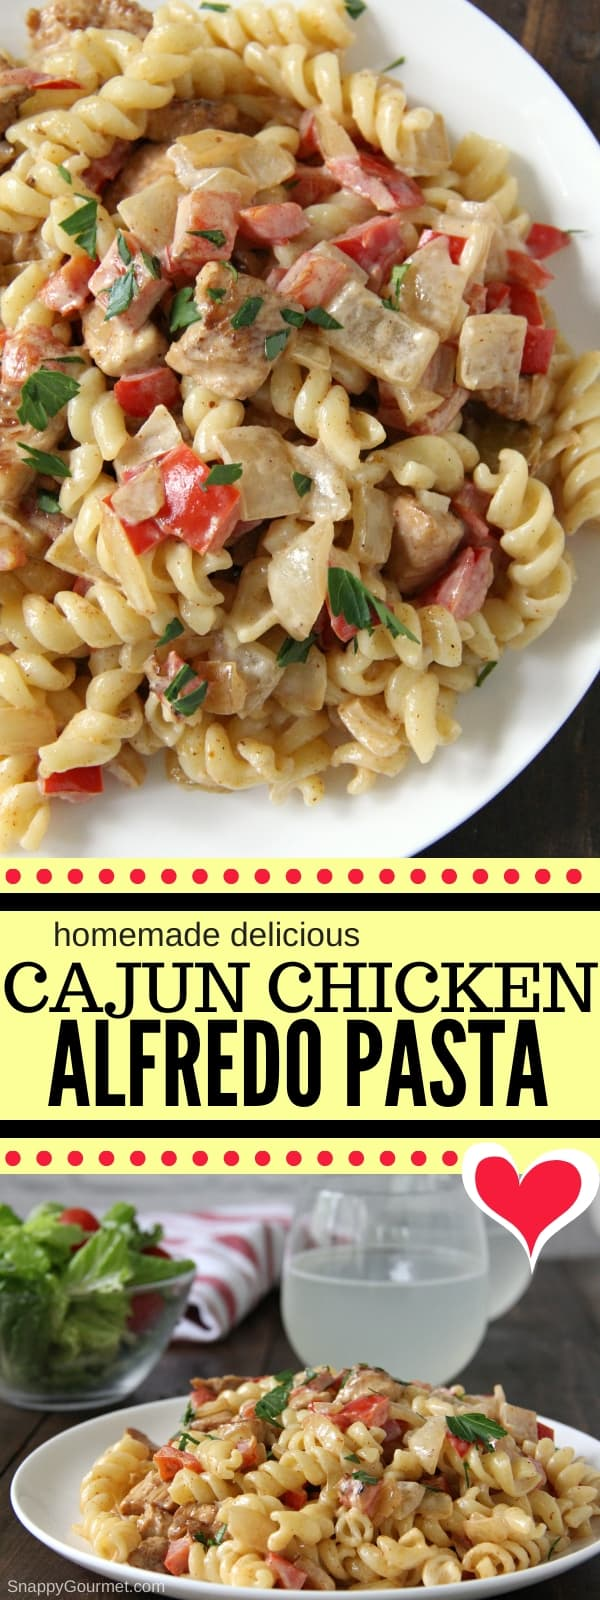 Cajun Chicken Alfredo Pasta recipe collage